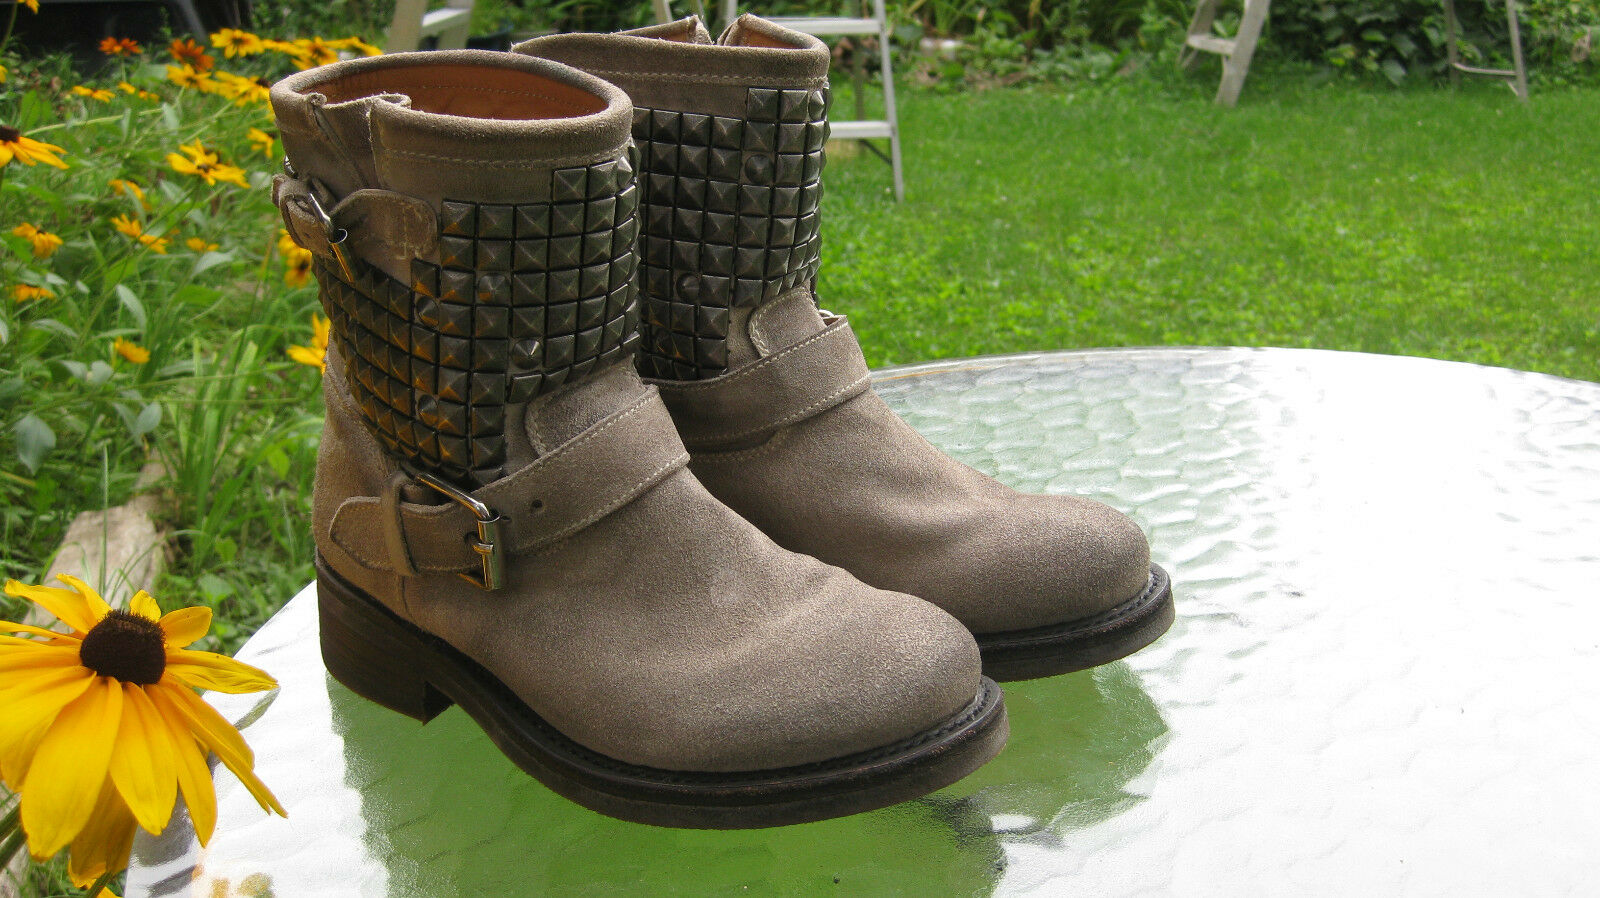 ASH Titan Clay Suede Leather Studded Ankle Biker bottes chaussures EU 36.5  US 6